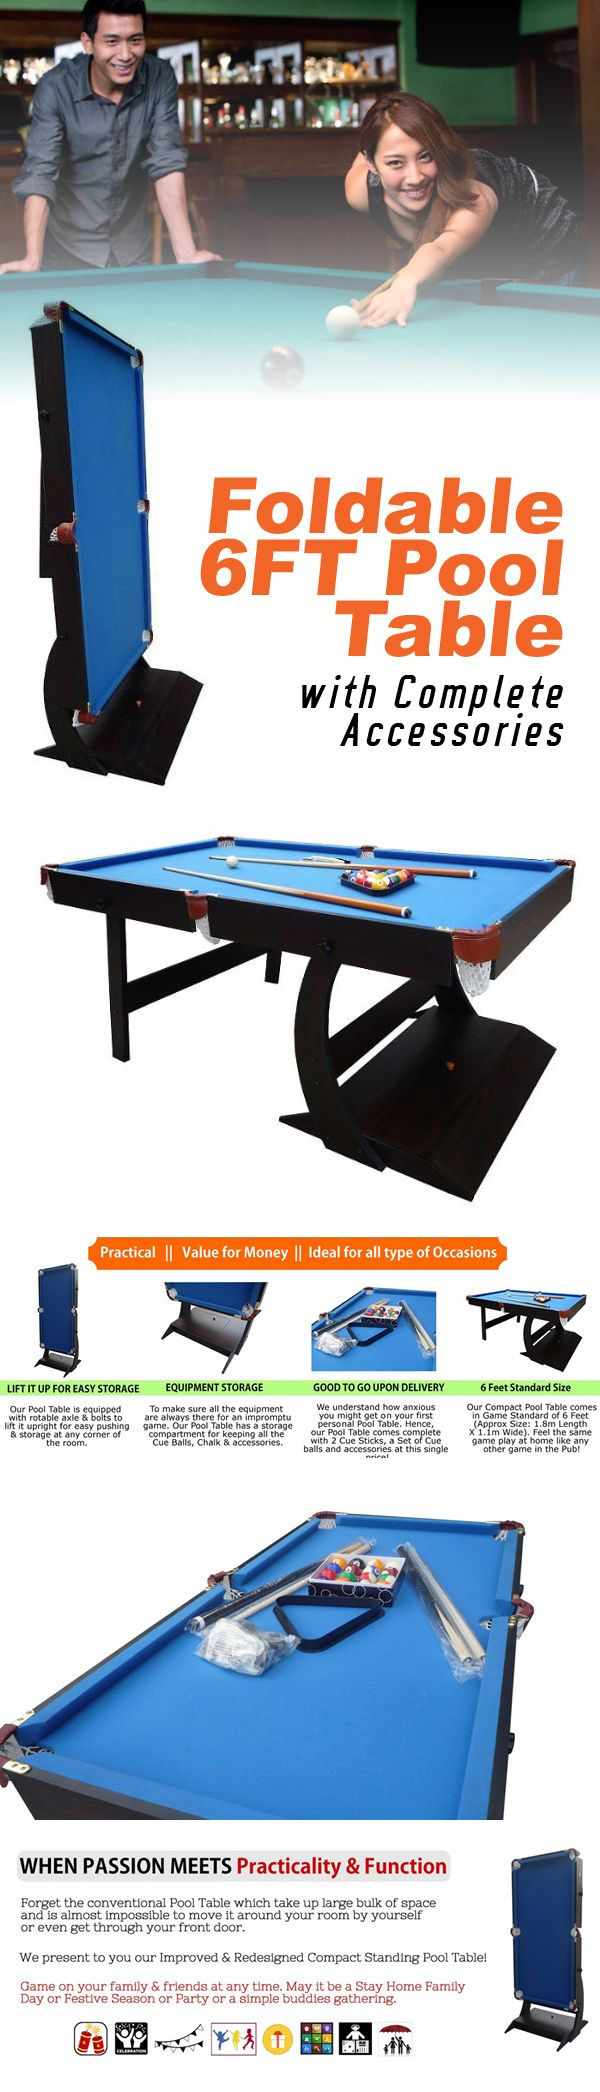 Foldable 6 Feet Pool Table with Complete Accessories + Free Delivery. Feel the Same Game Play at Home Like Any Other Game in the Pub! | All Deals Asia